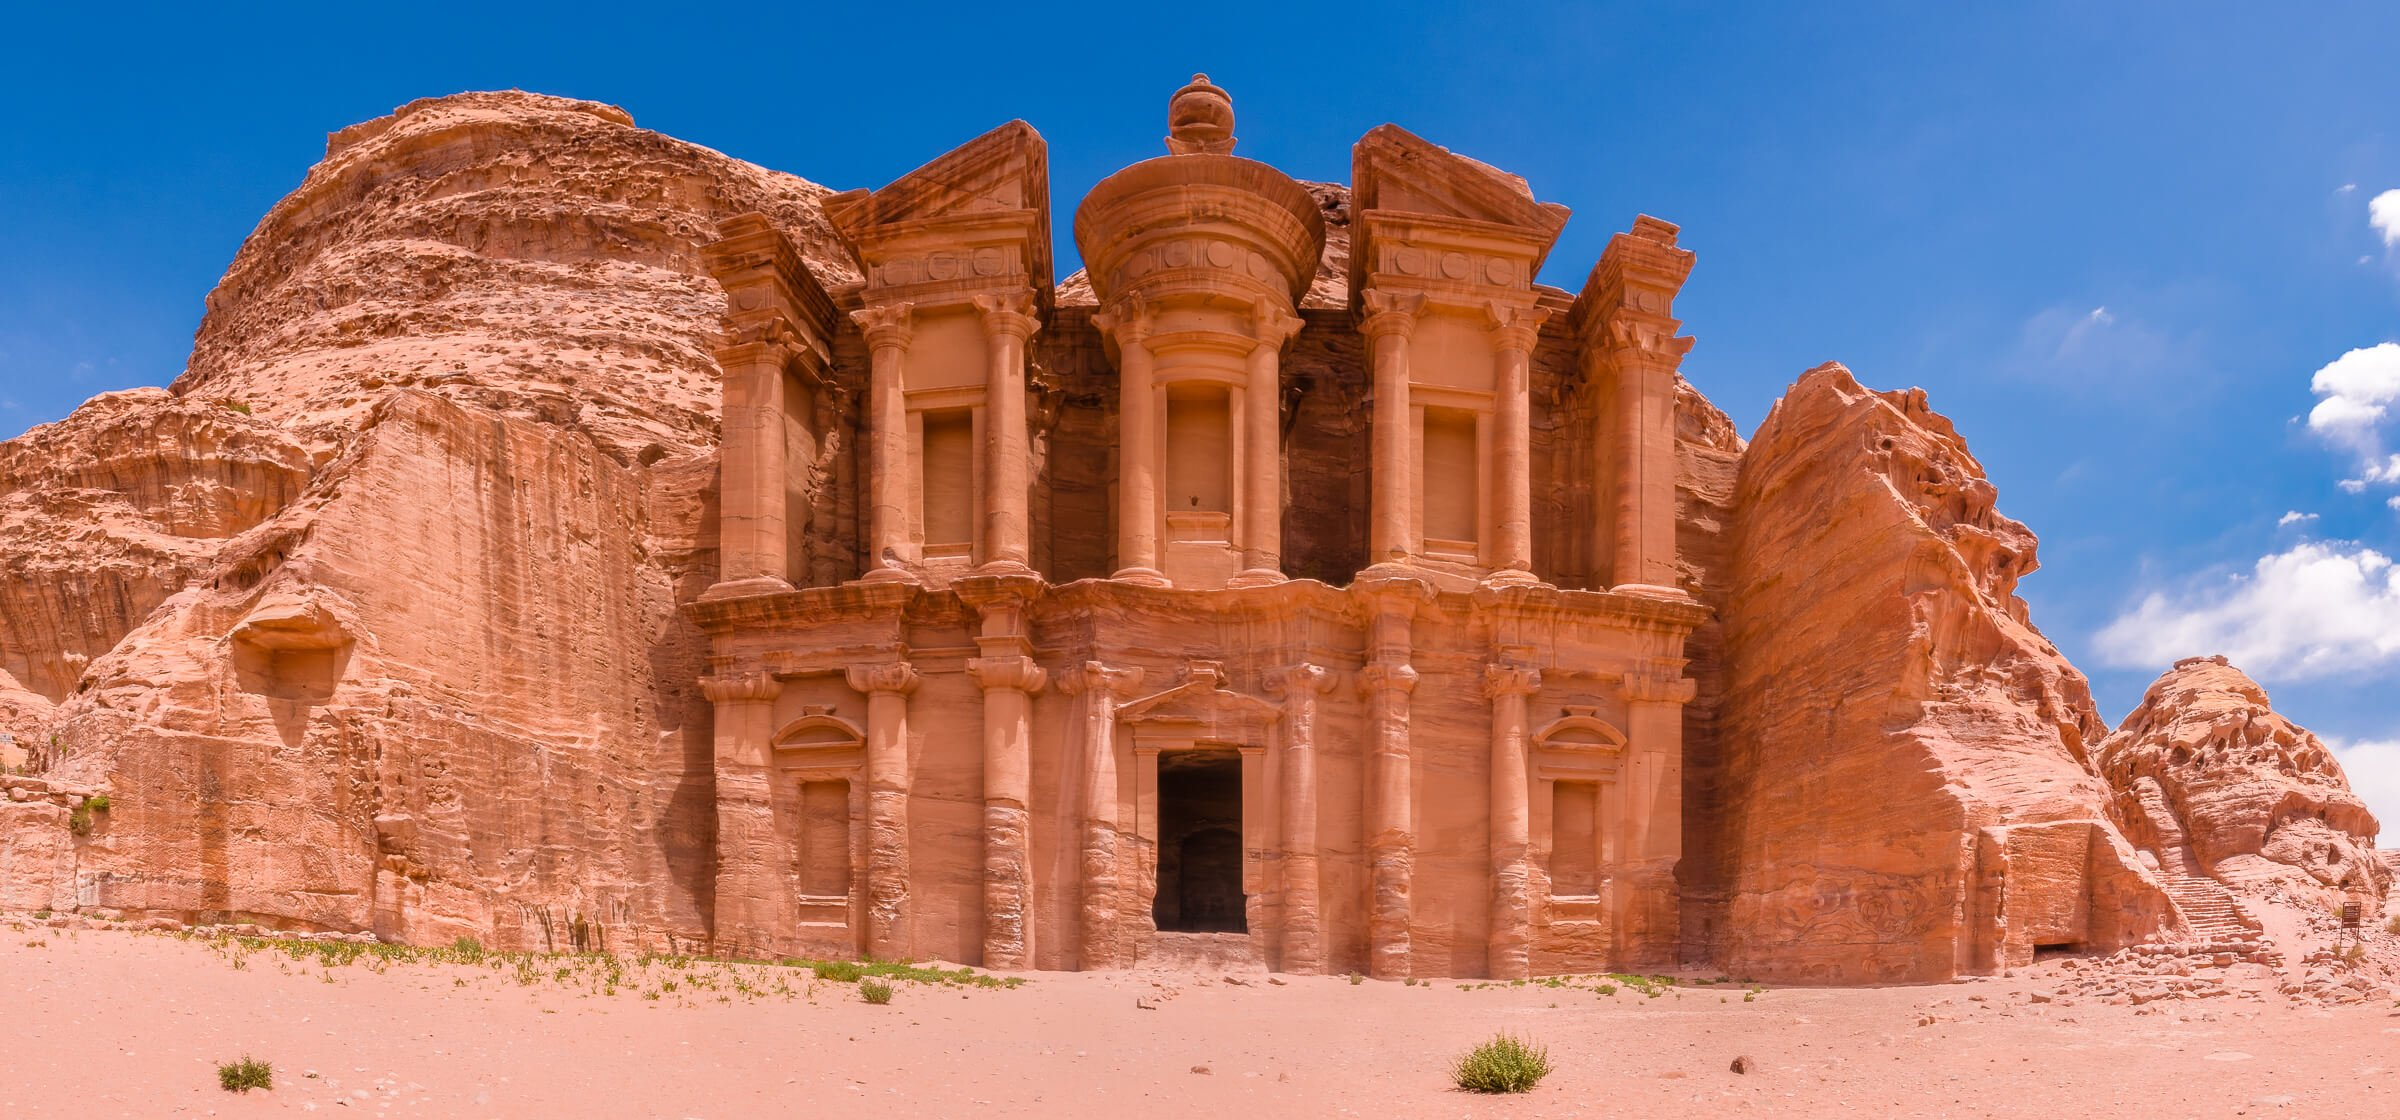 Inside Petra - a Wonder of the World